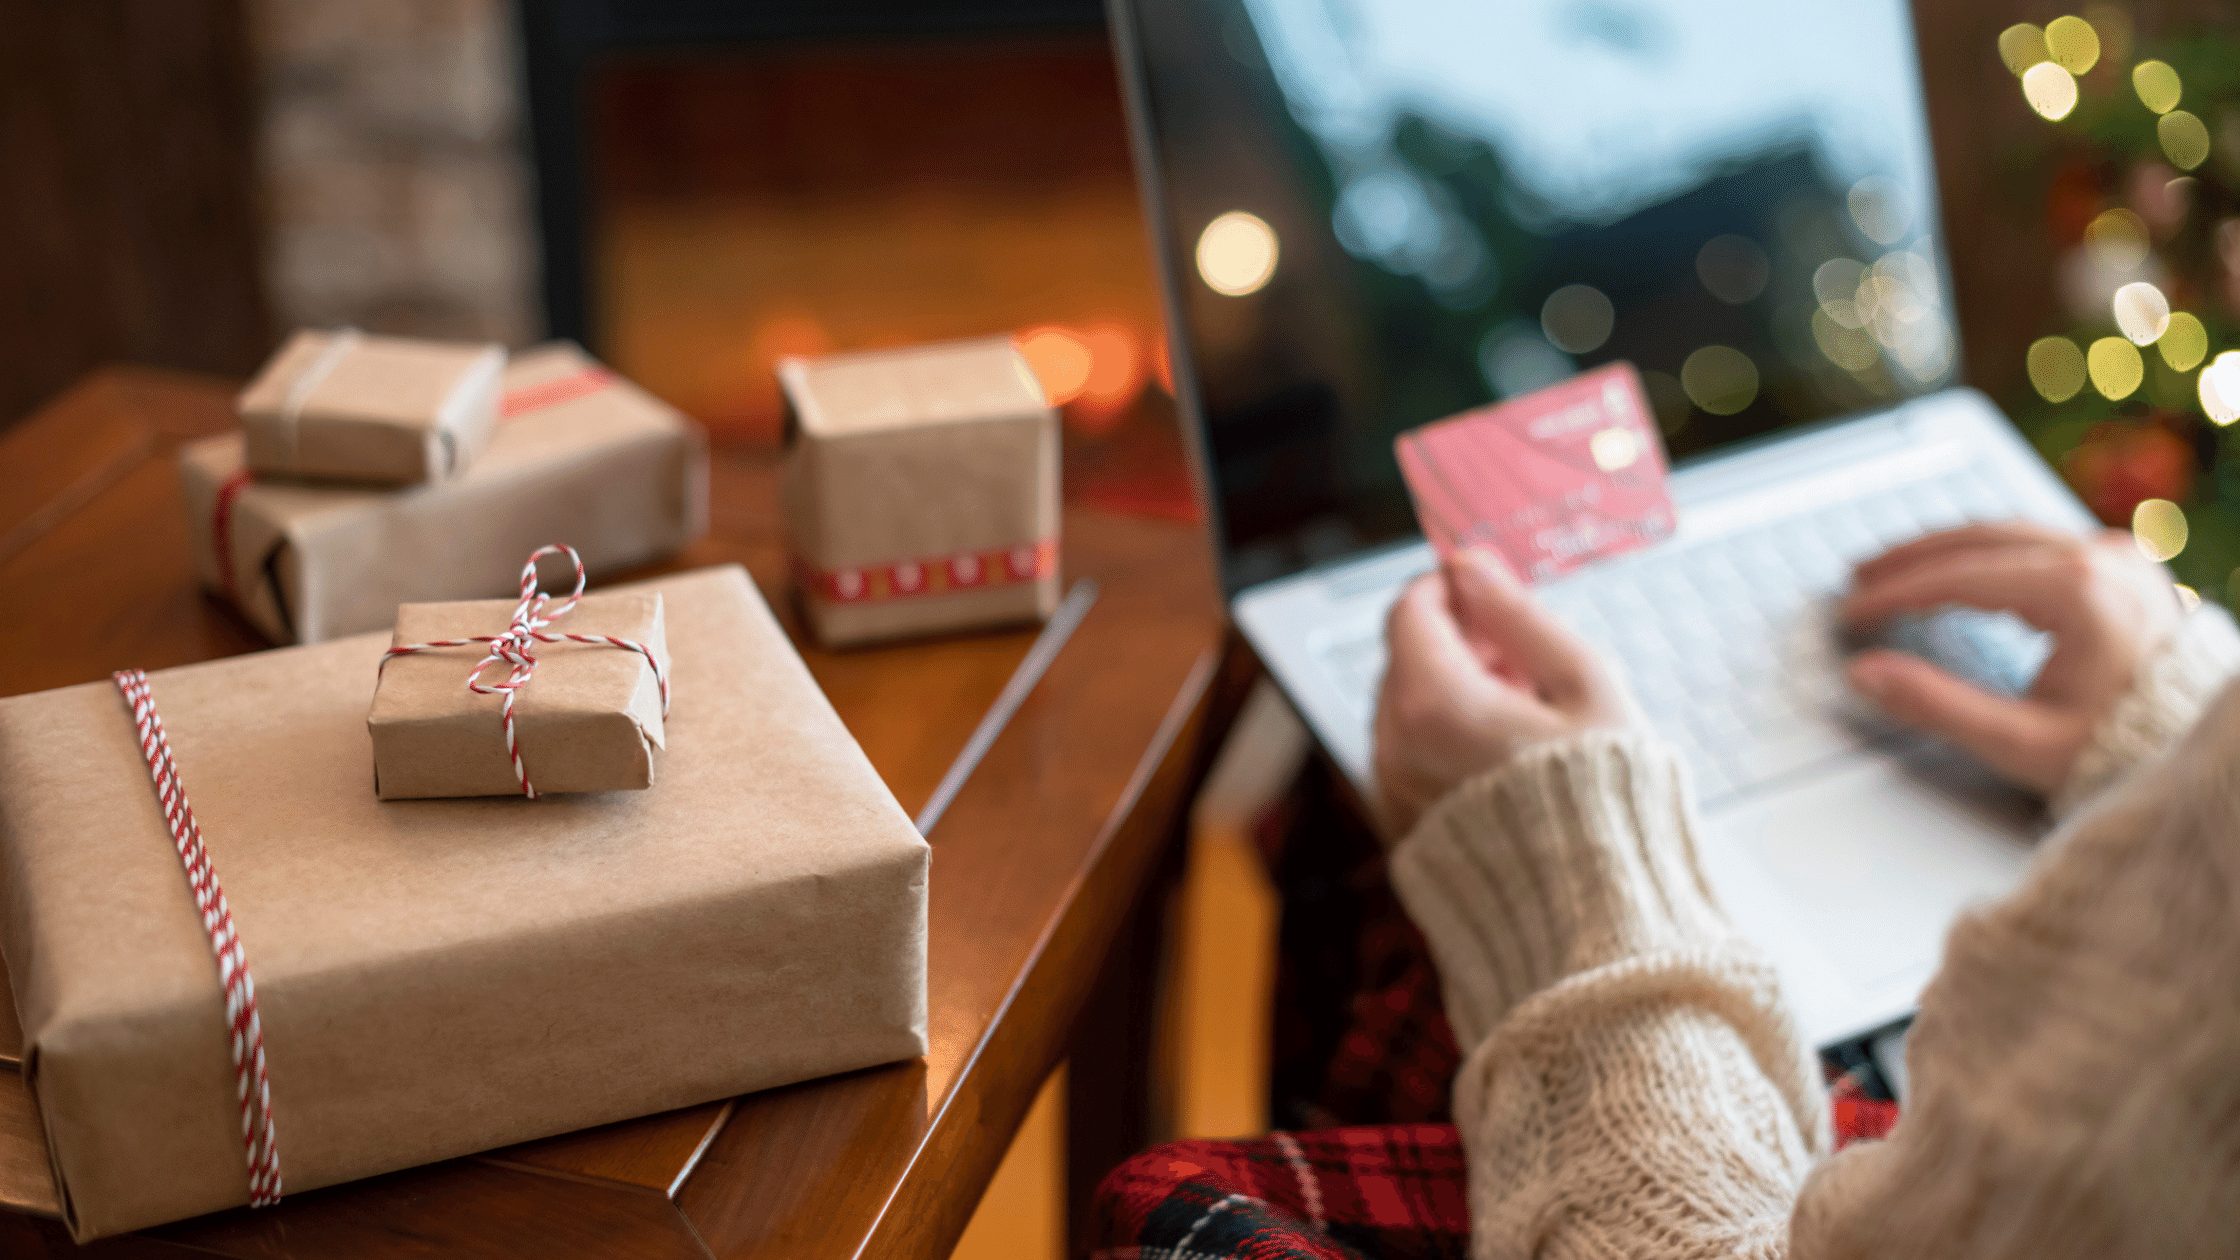 2021 Holiday Shopping Predictions: These Trends May Surprise You